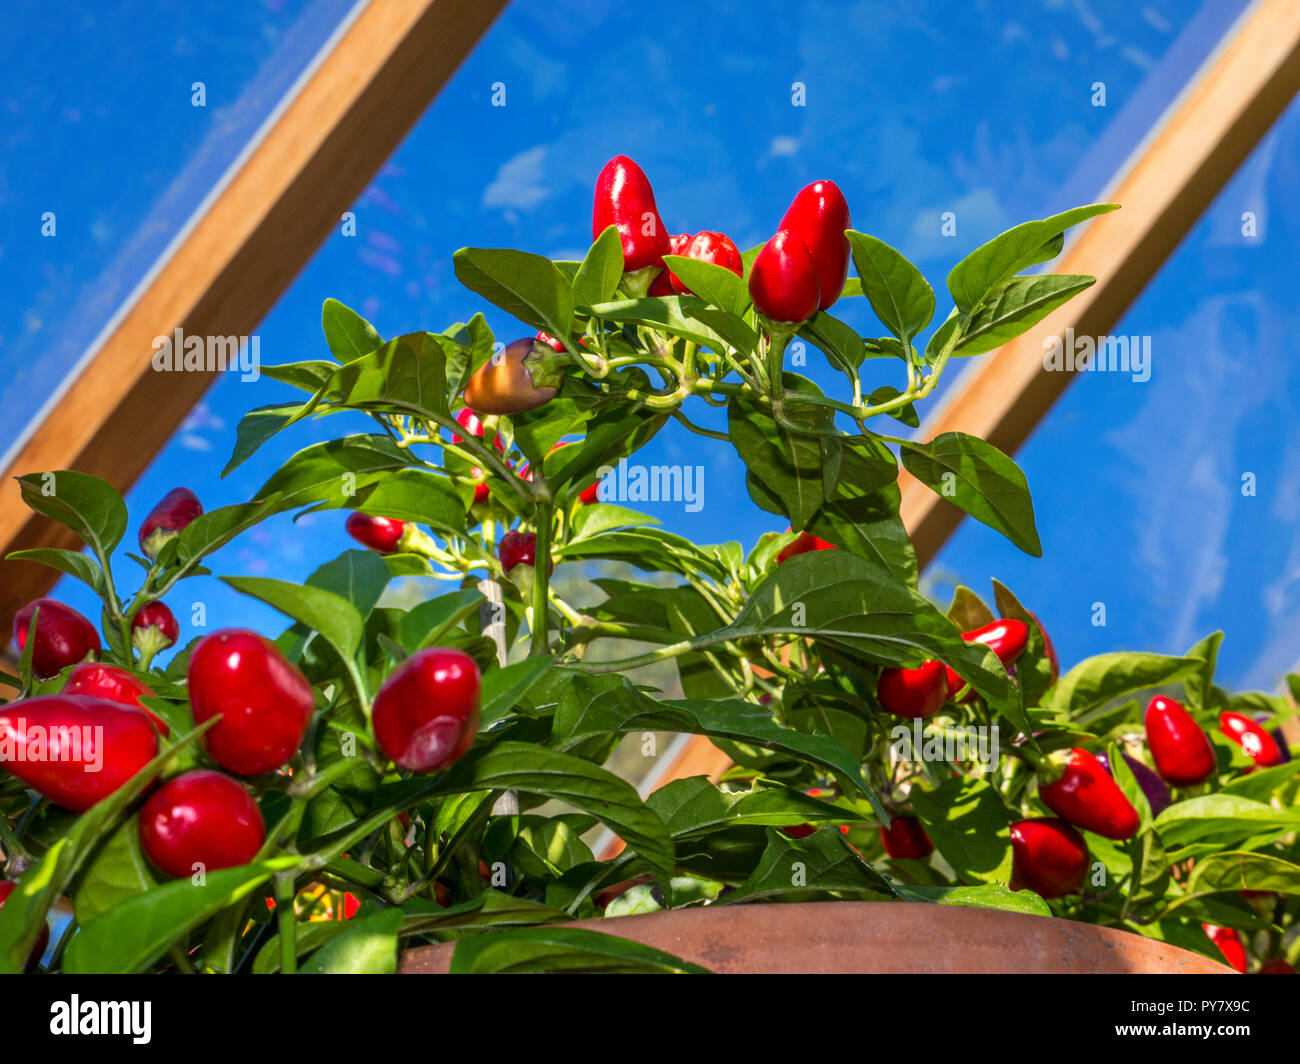 Chilli Pepper 'Loco' growing in sunny greenhouse with blue sky  'ornamental edible' for sunny domestic windowsill, patio container or greenhouse crop. Stock Photo